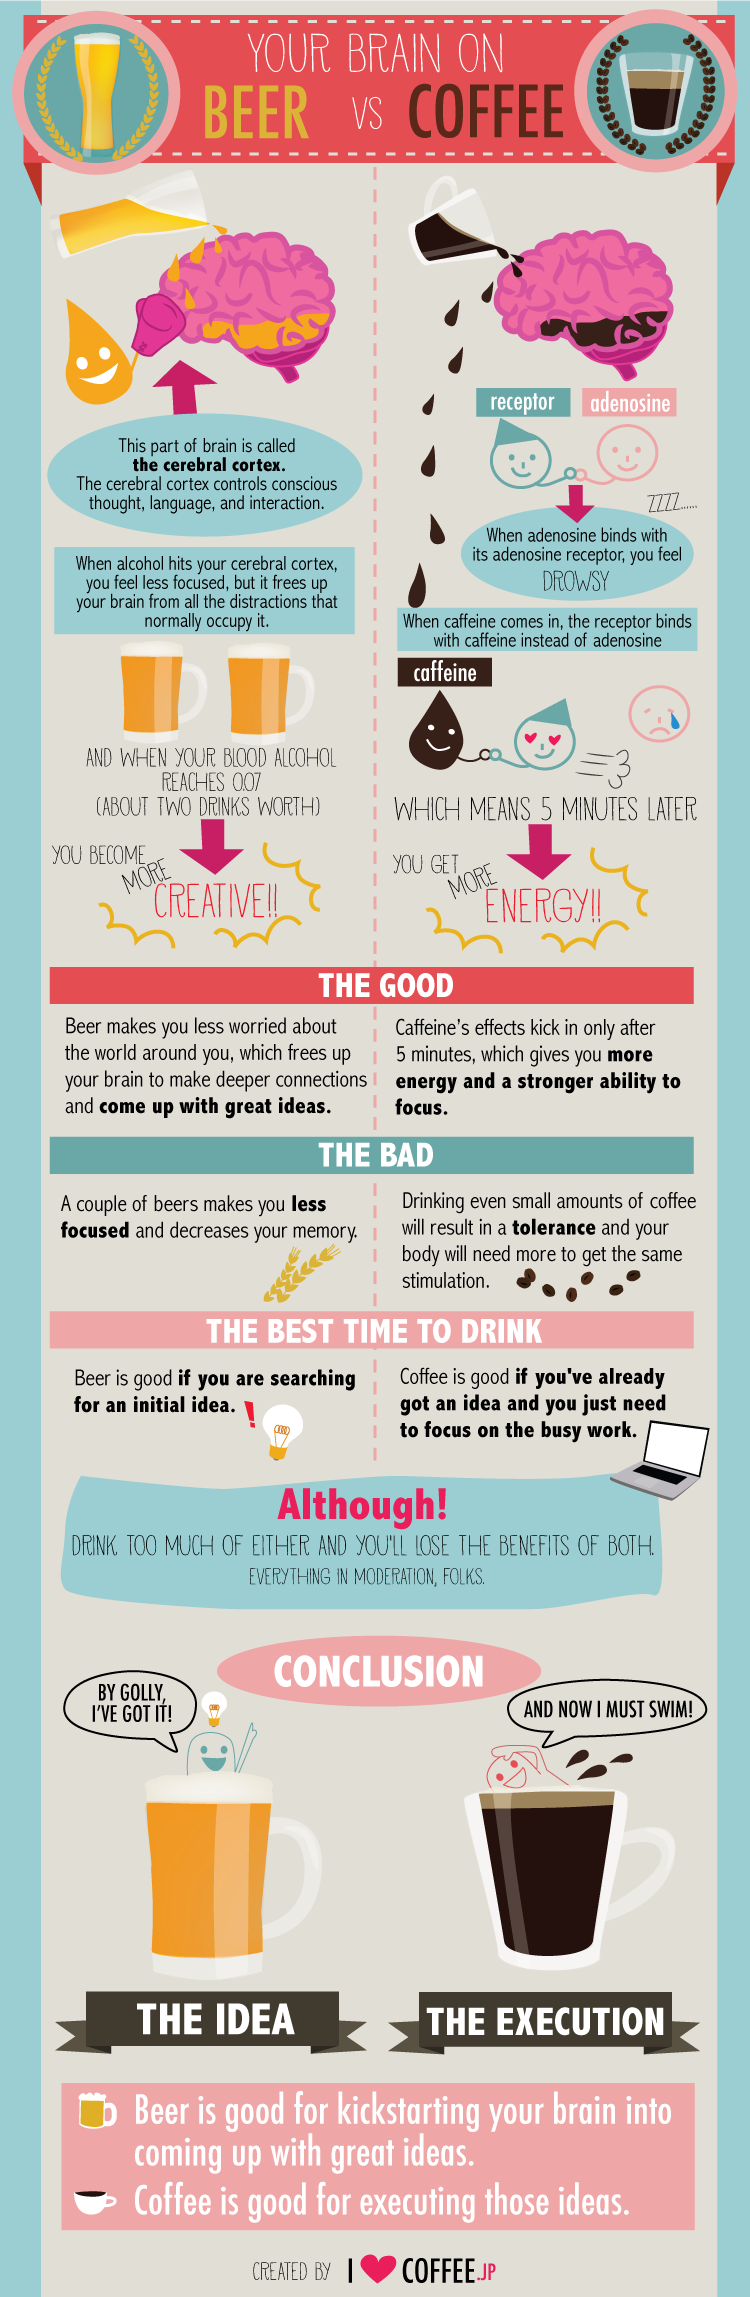 Comparison of Beer vs Coffee On Brain